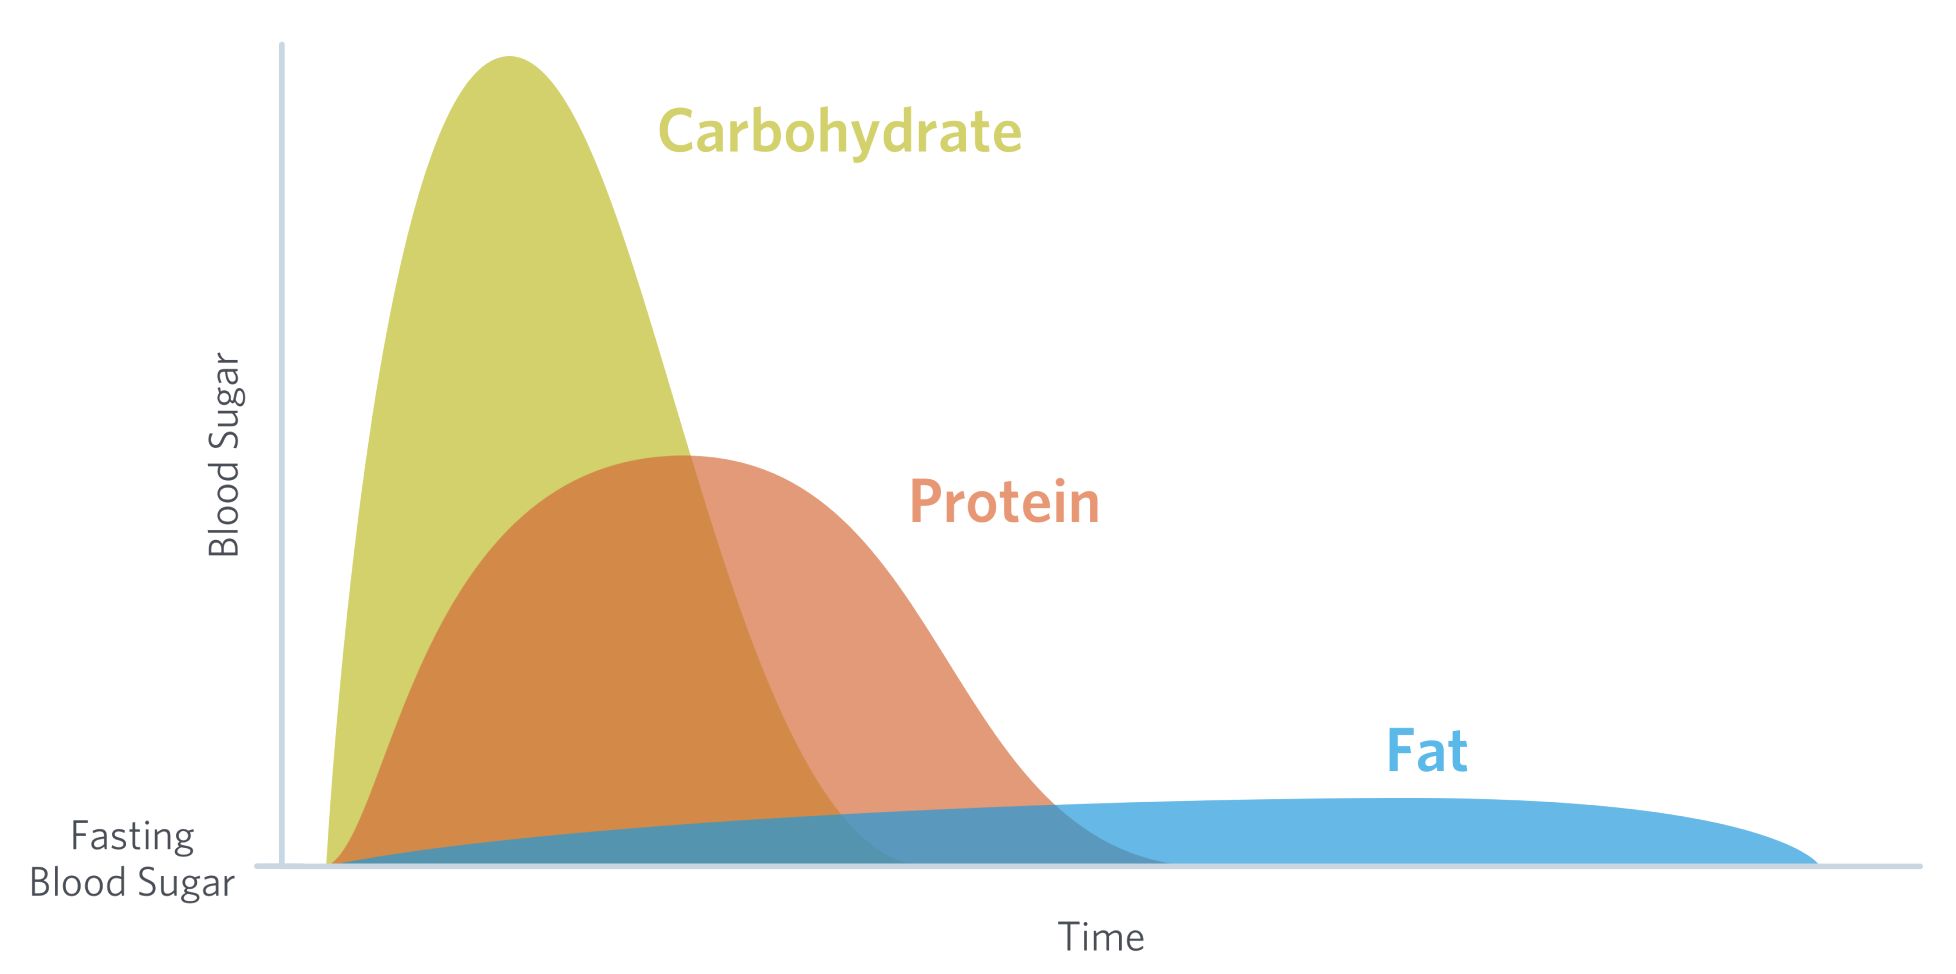 A diagram showing the blood sugar response to carbohydrates, protein, and fat